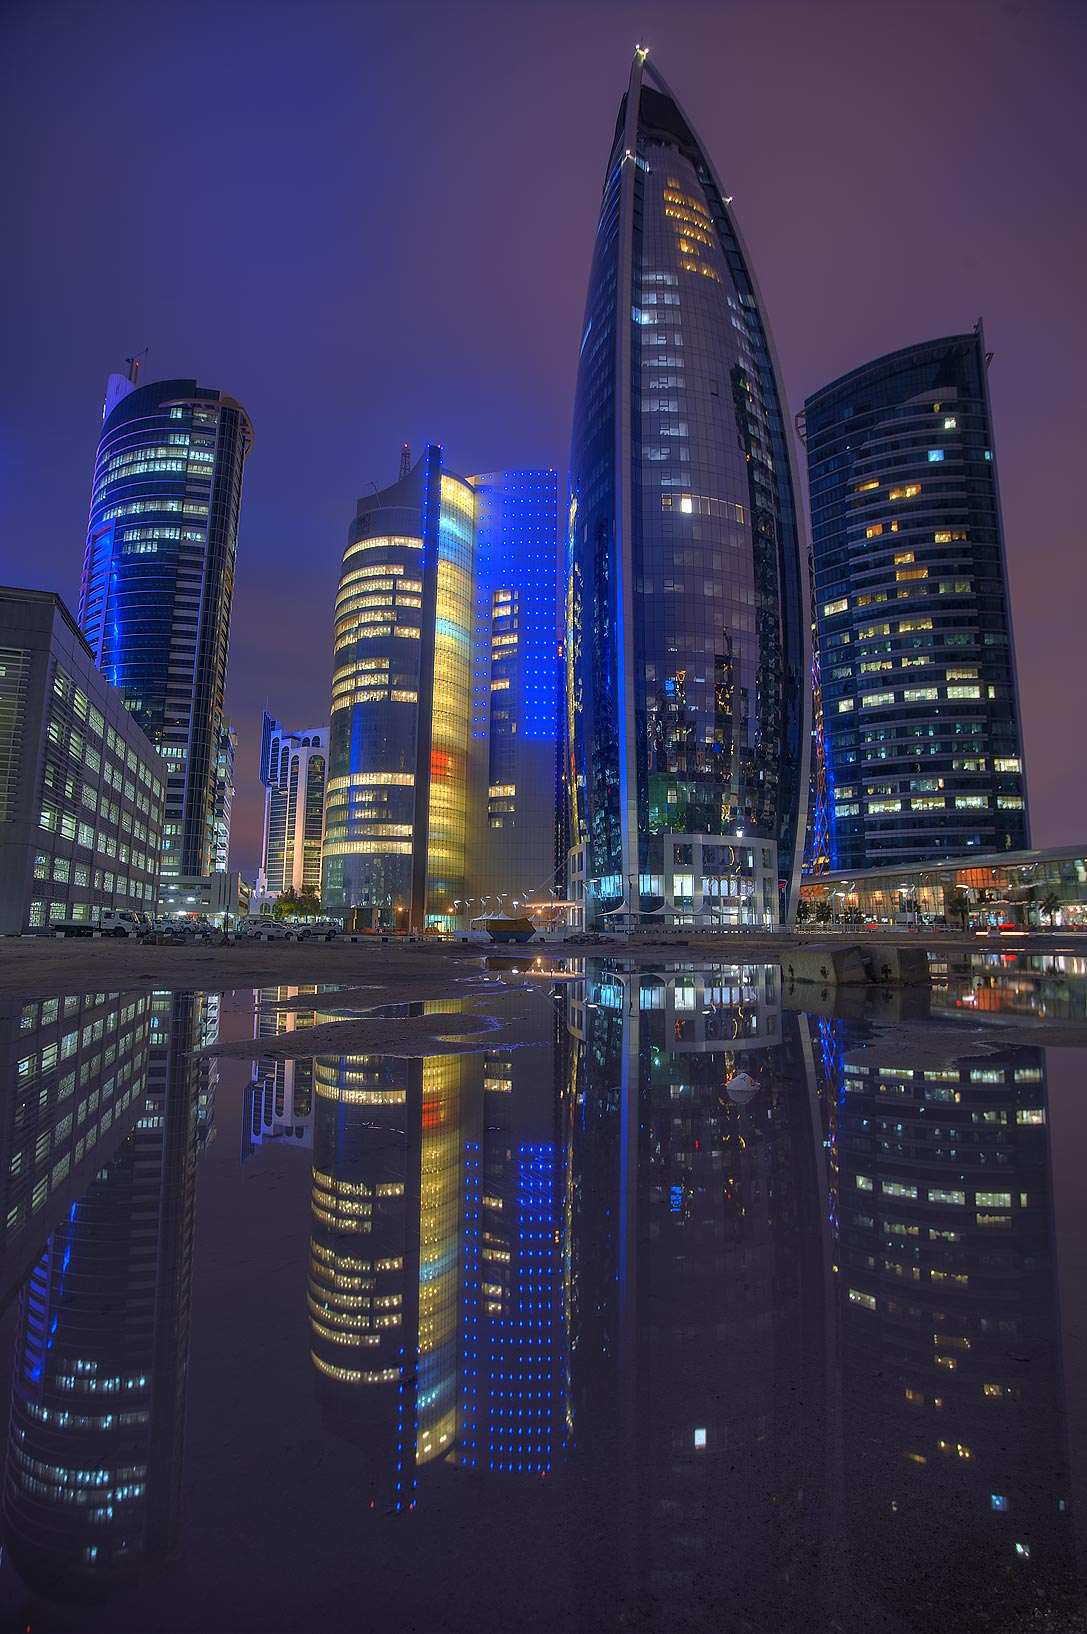 Reflections of Nakheel and Woqod towers in a pool...a parking lot in West Bay. Doha, Qatar